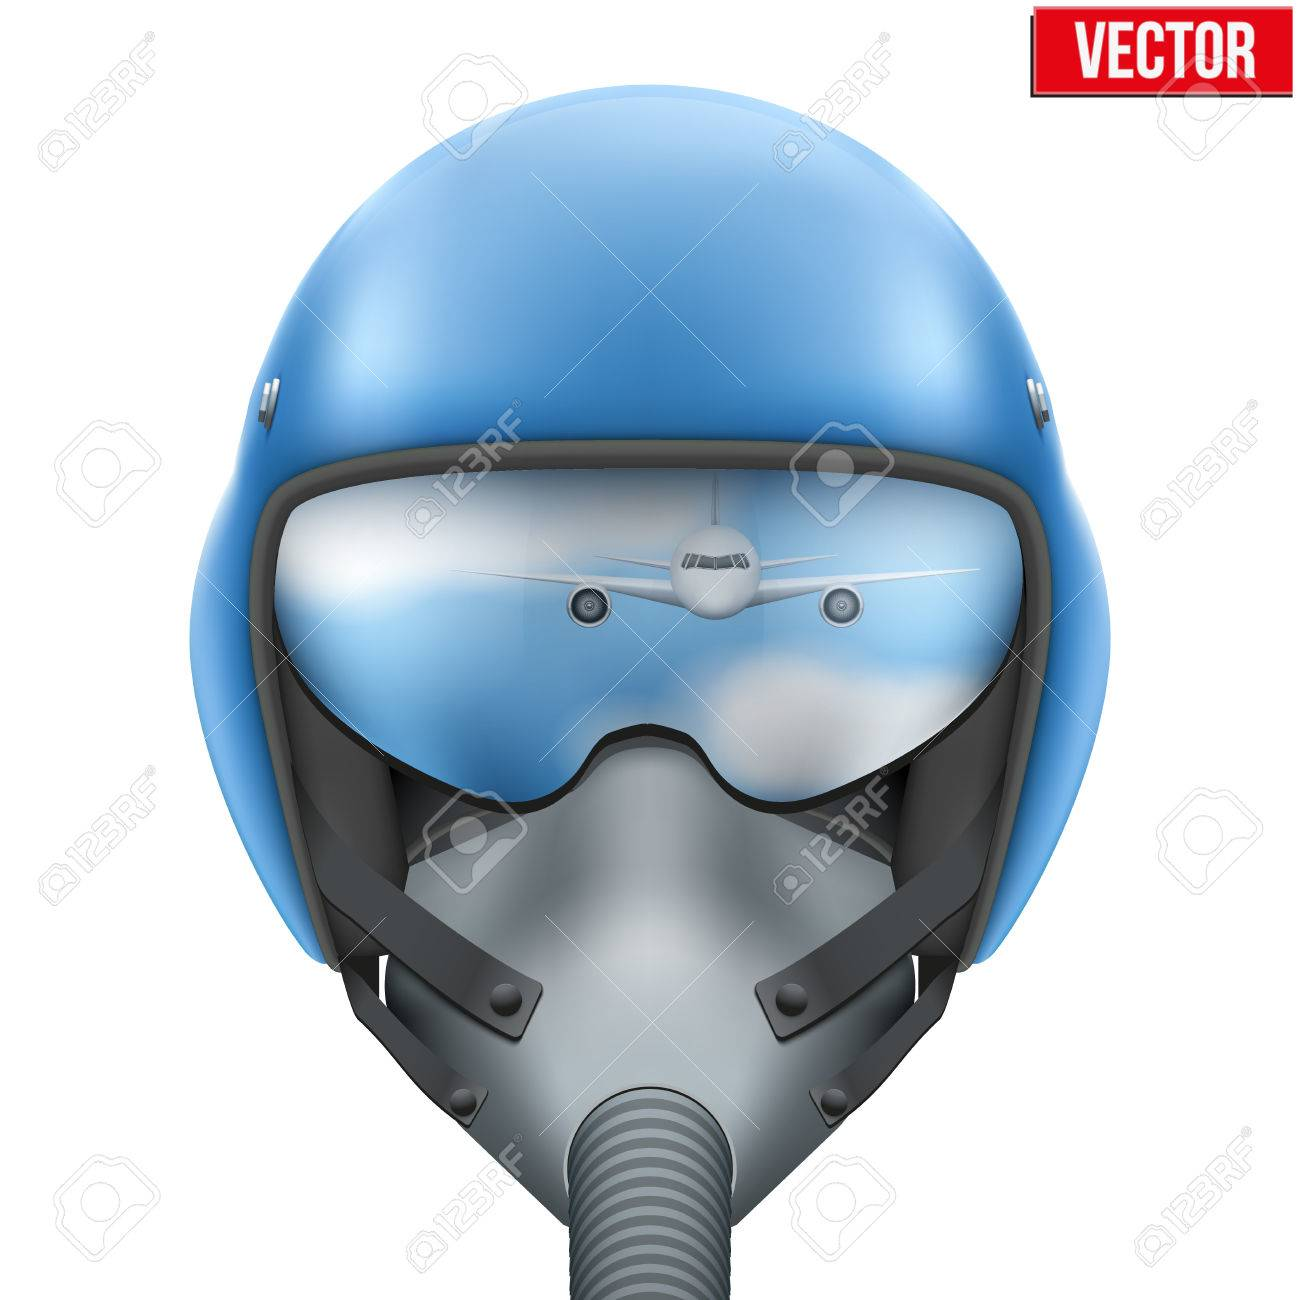 ea7c46513e Military flight fighter pilot blue helmet of Air Force with oxygen mask.  illustration isolated on